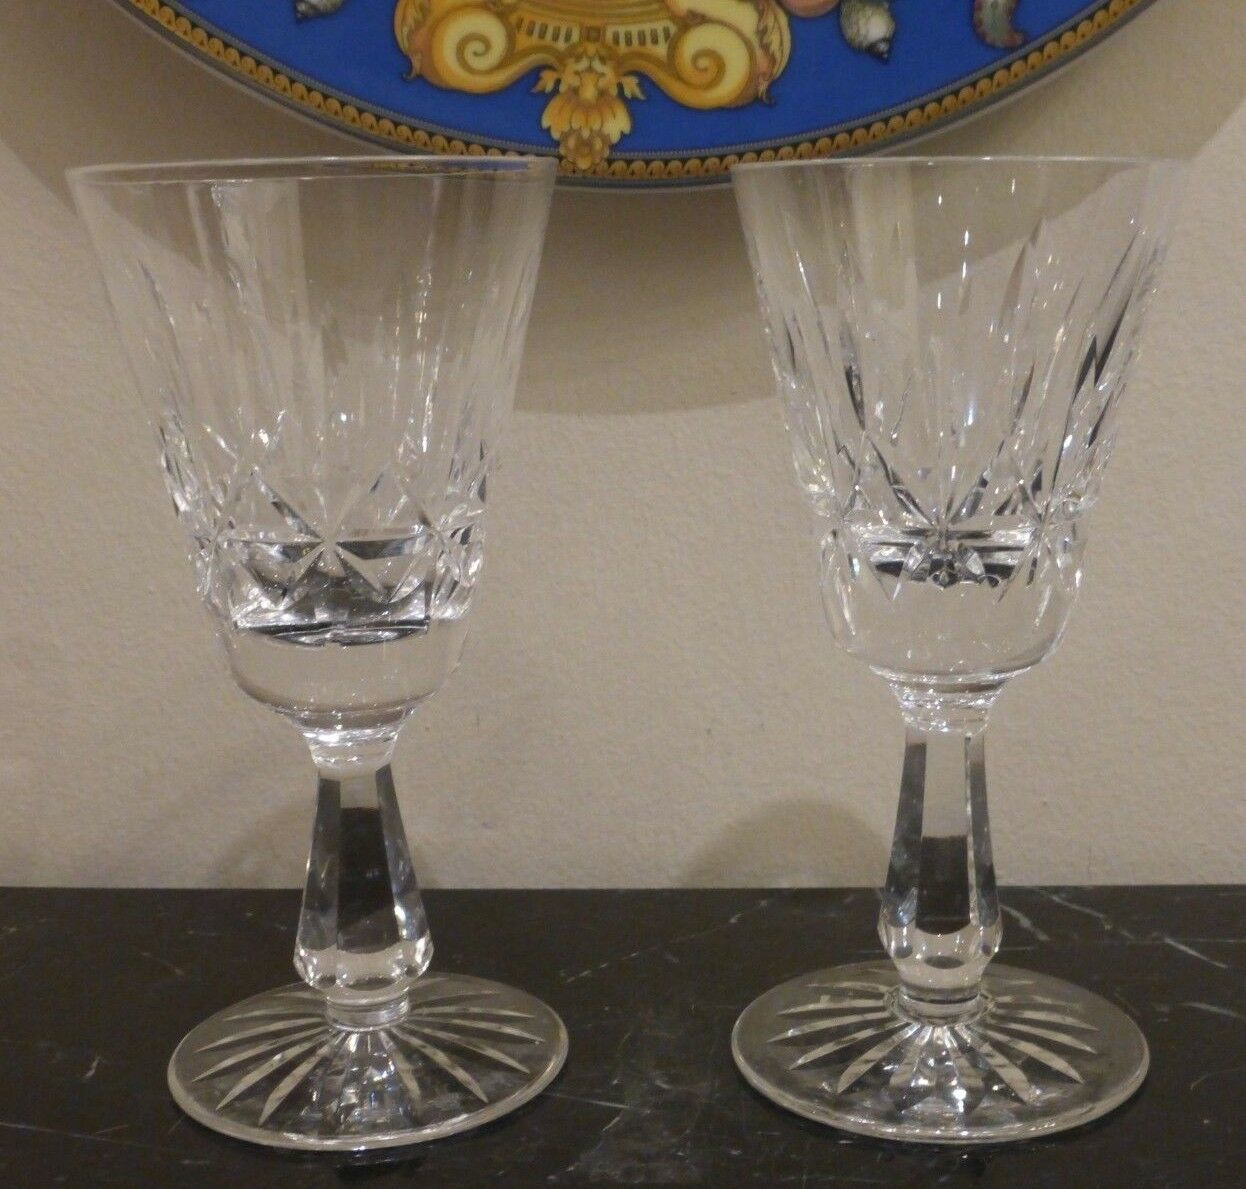 Primary image for Waterford Crystal Rosslare Pattern 1 White Wine and 1 Port Wine Stemware